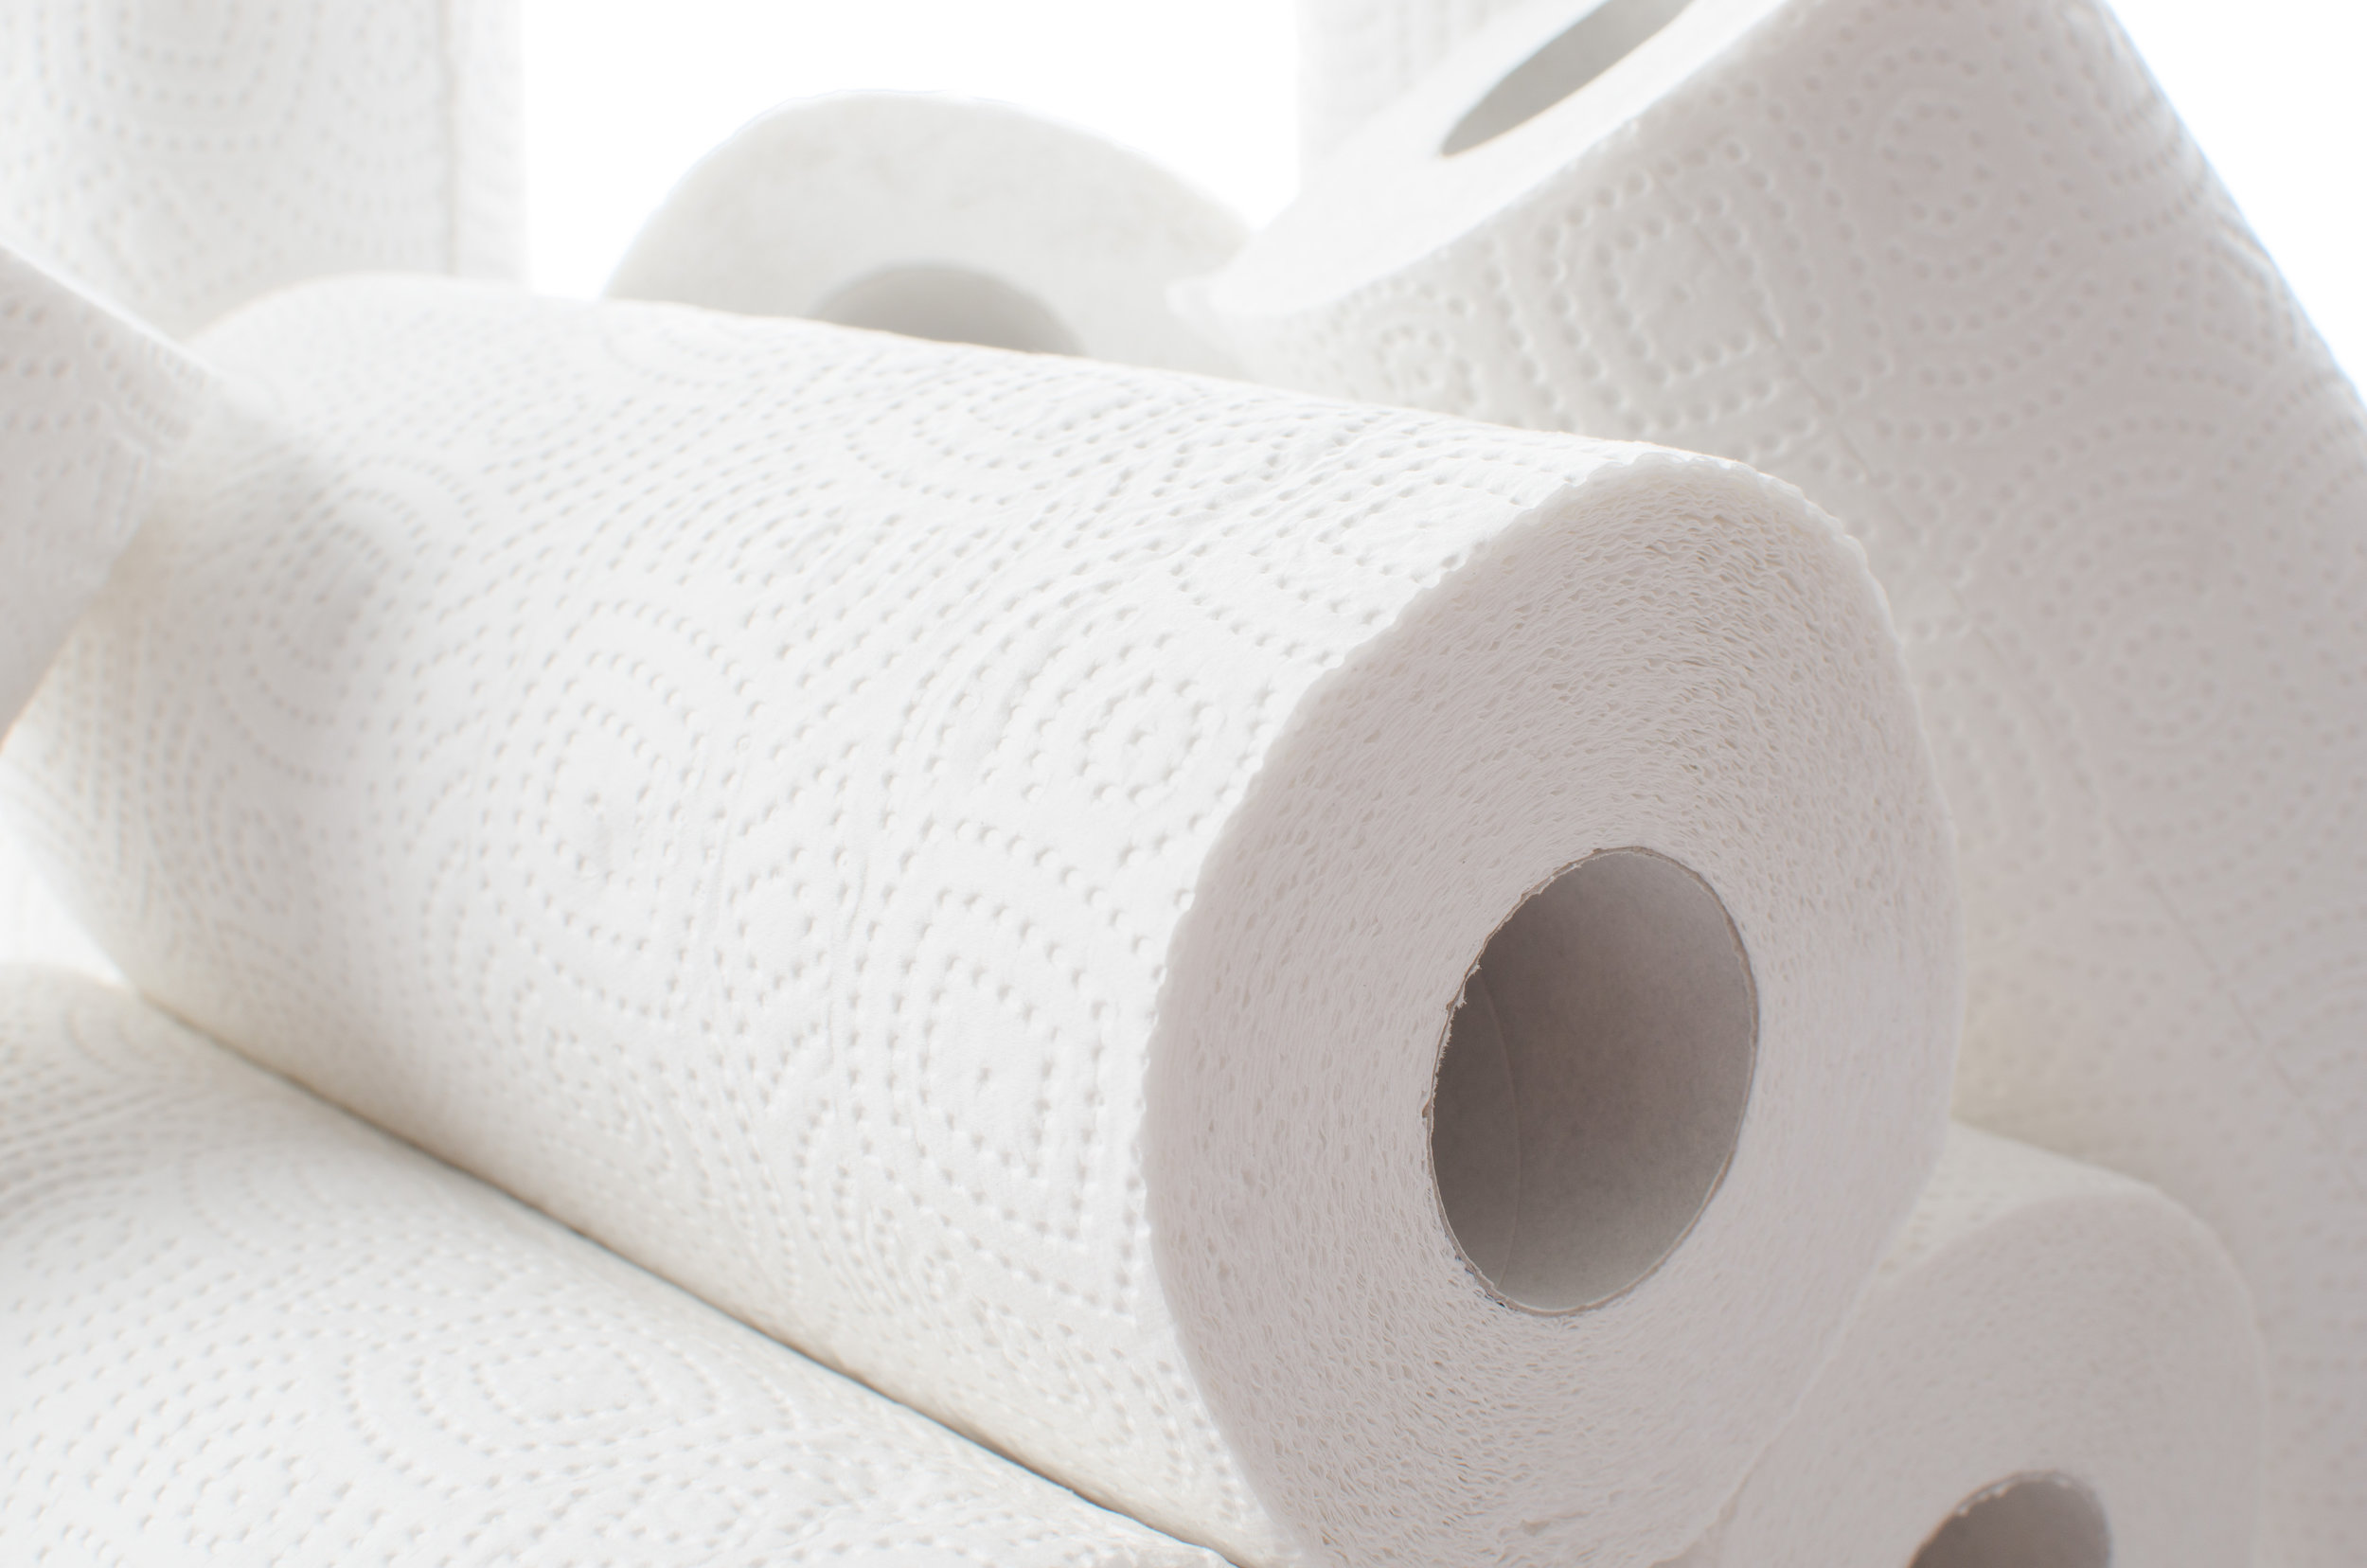 Market leaders in everyday consumer hygiene products - Gets a high quality print